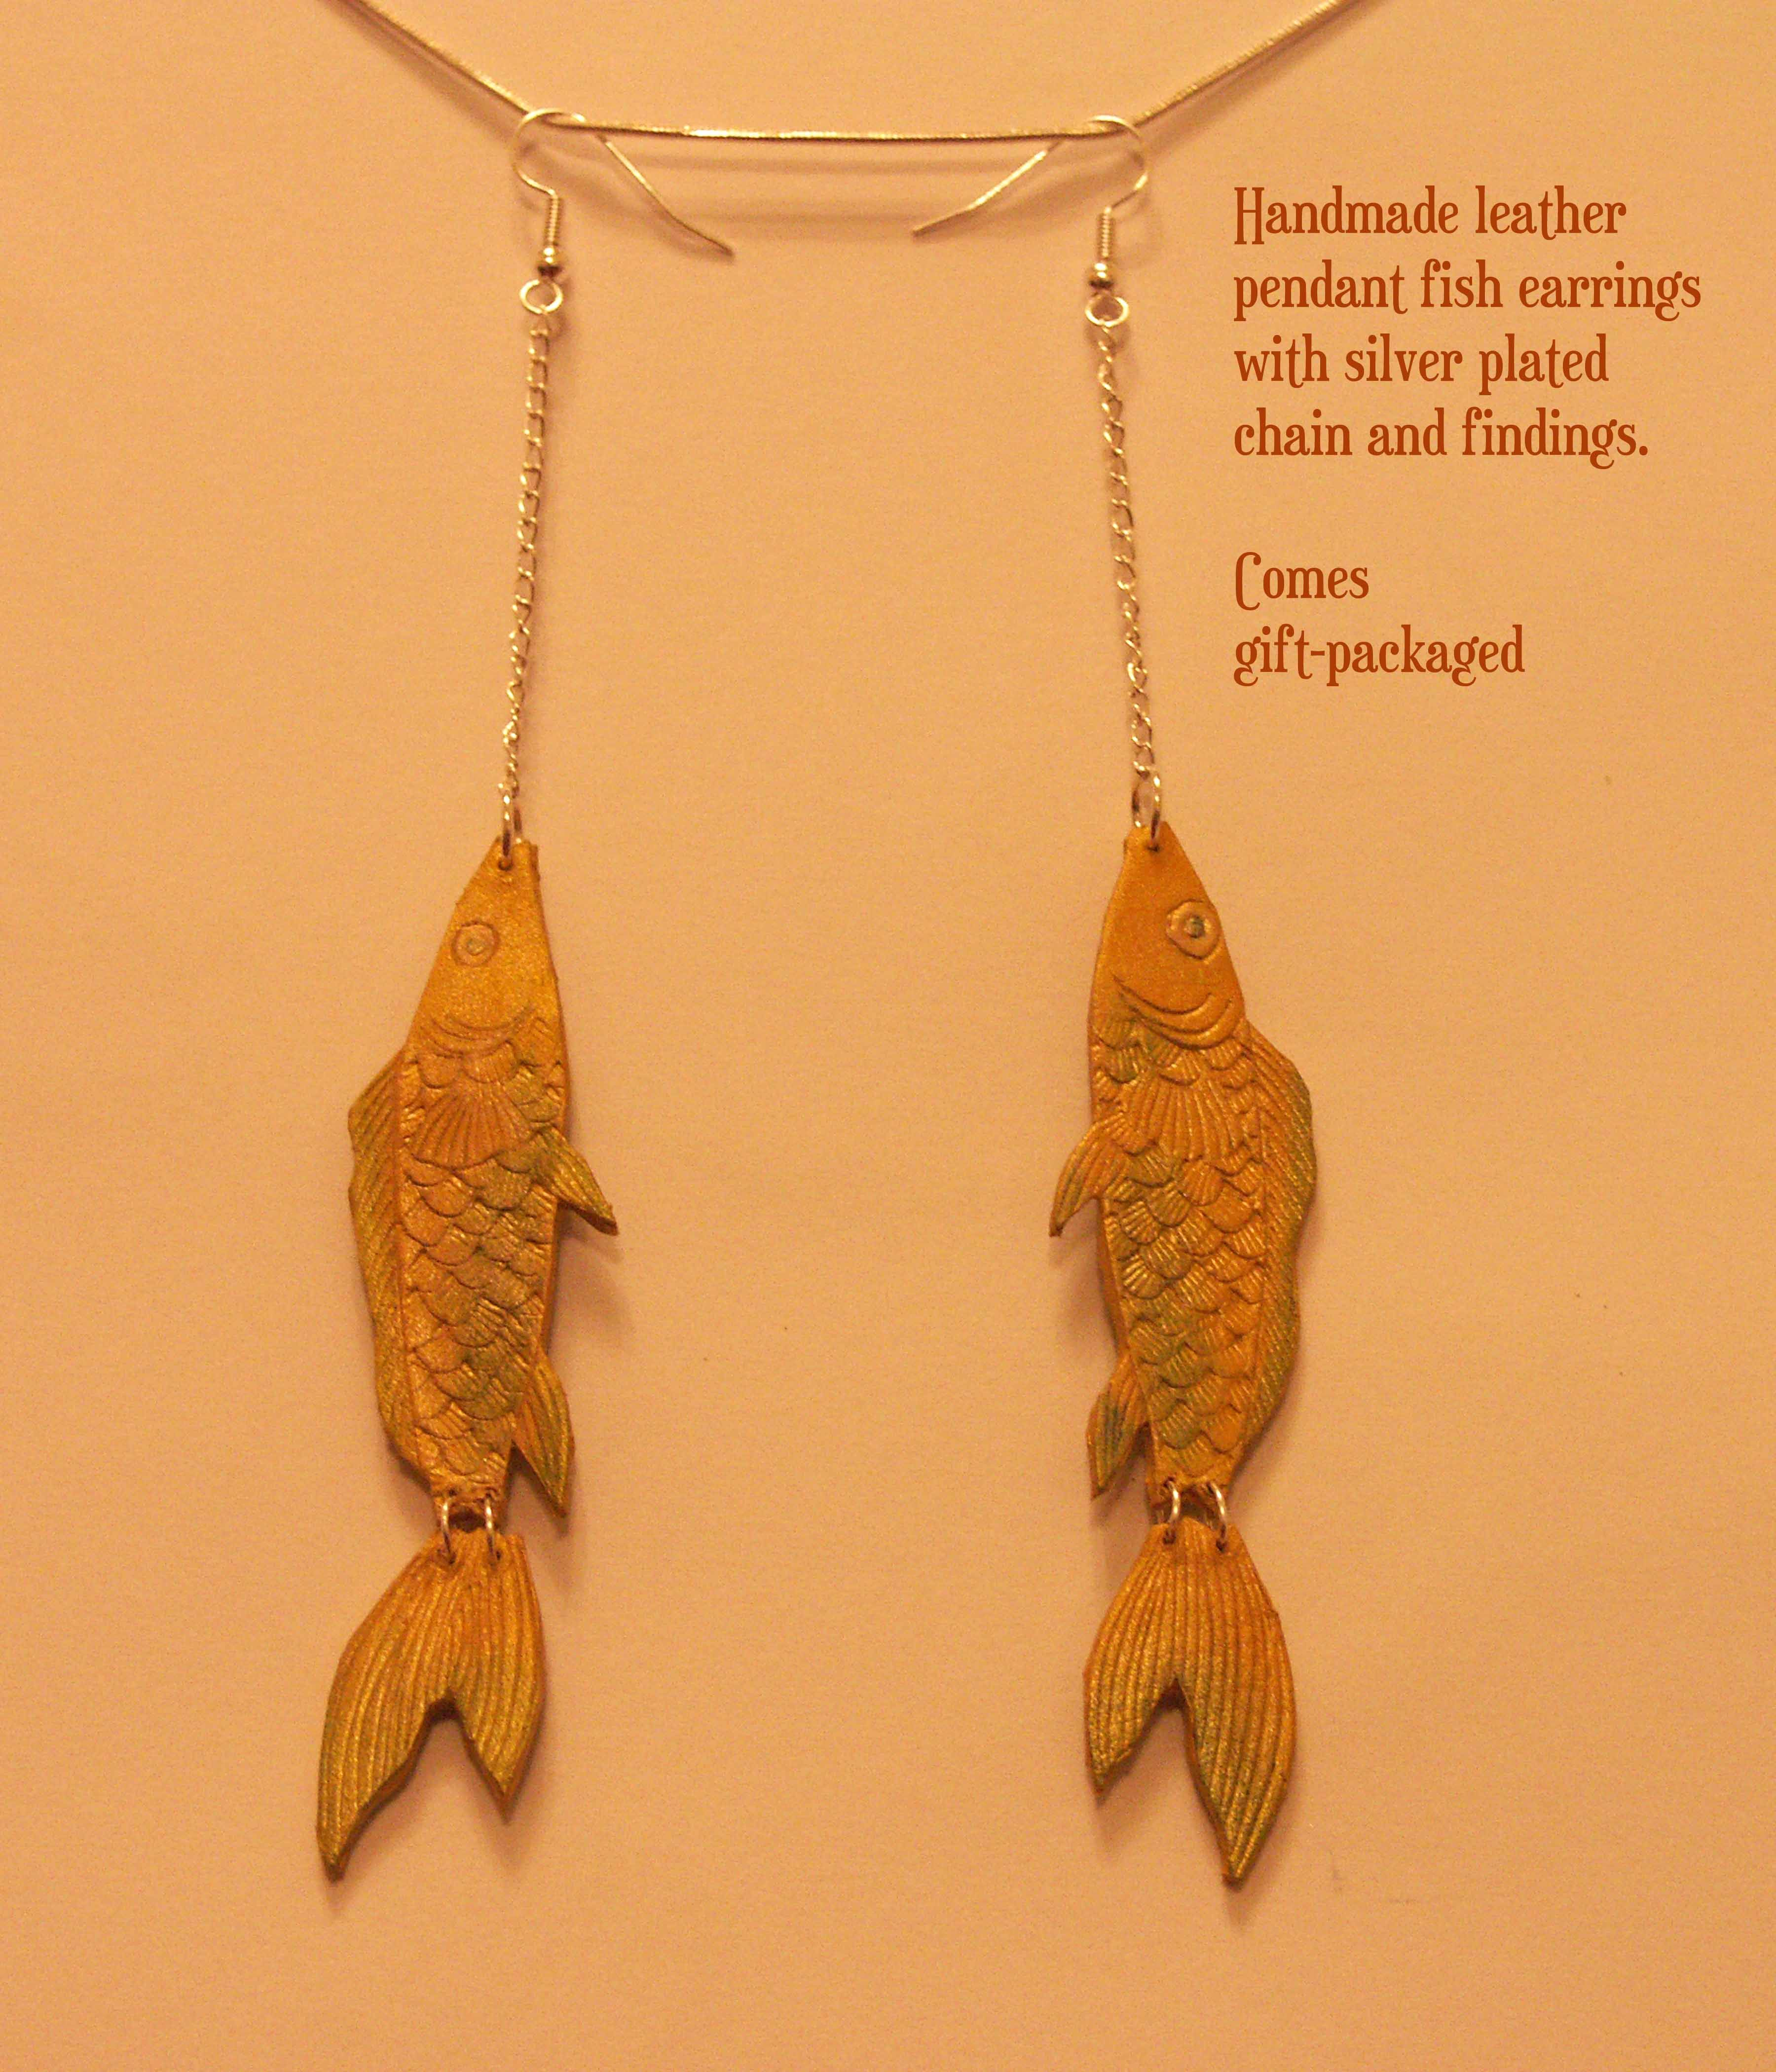 Hanging Fish leather pendant on silver plated chain. French hook earrings. (Item can be made in different colors)